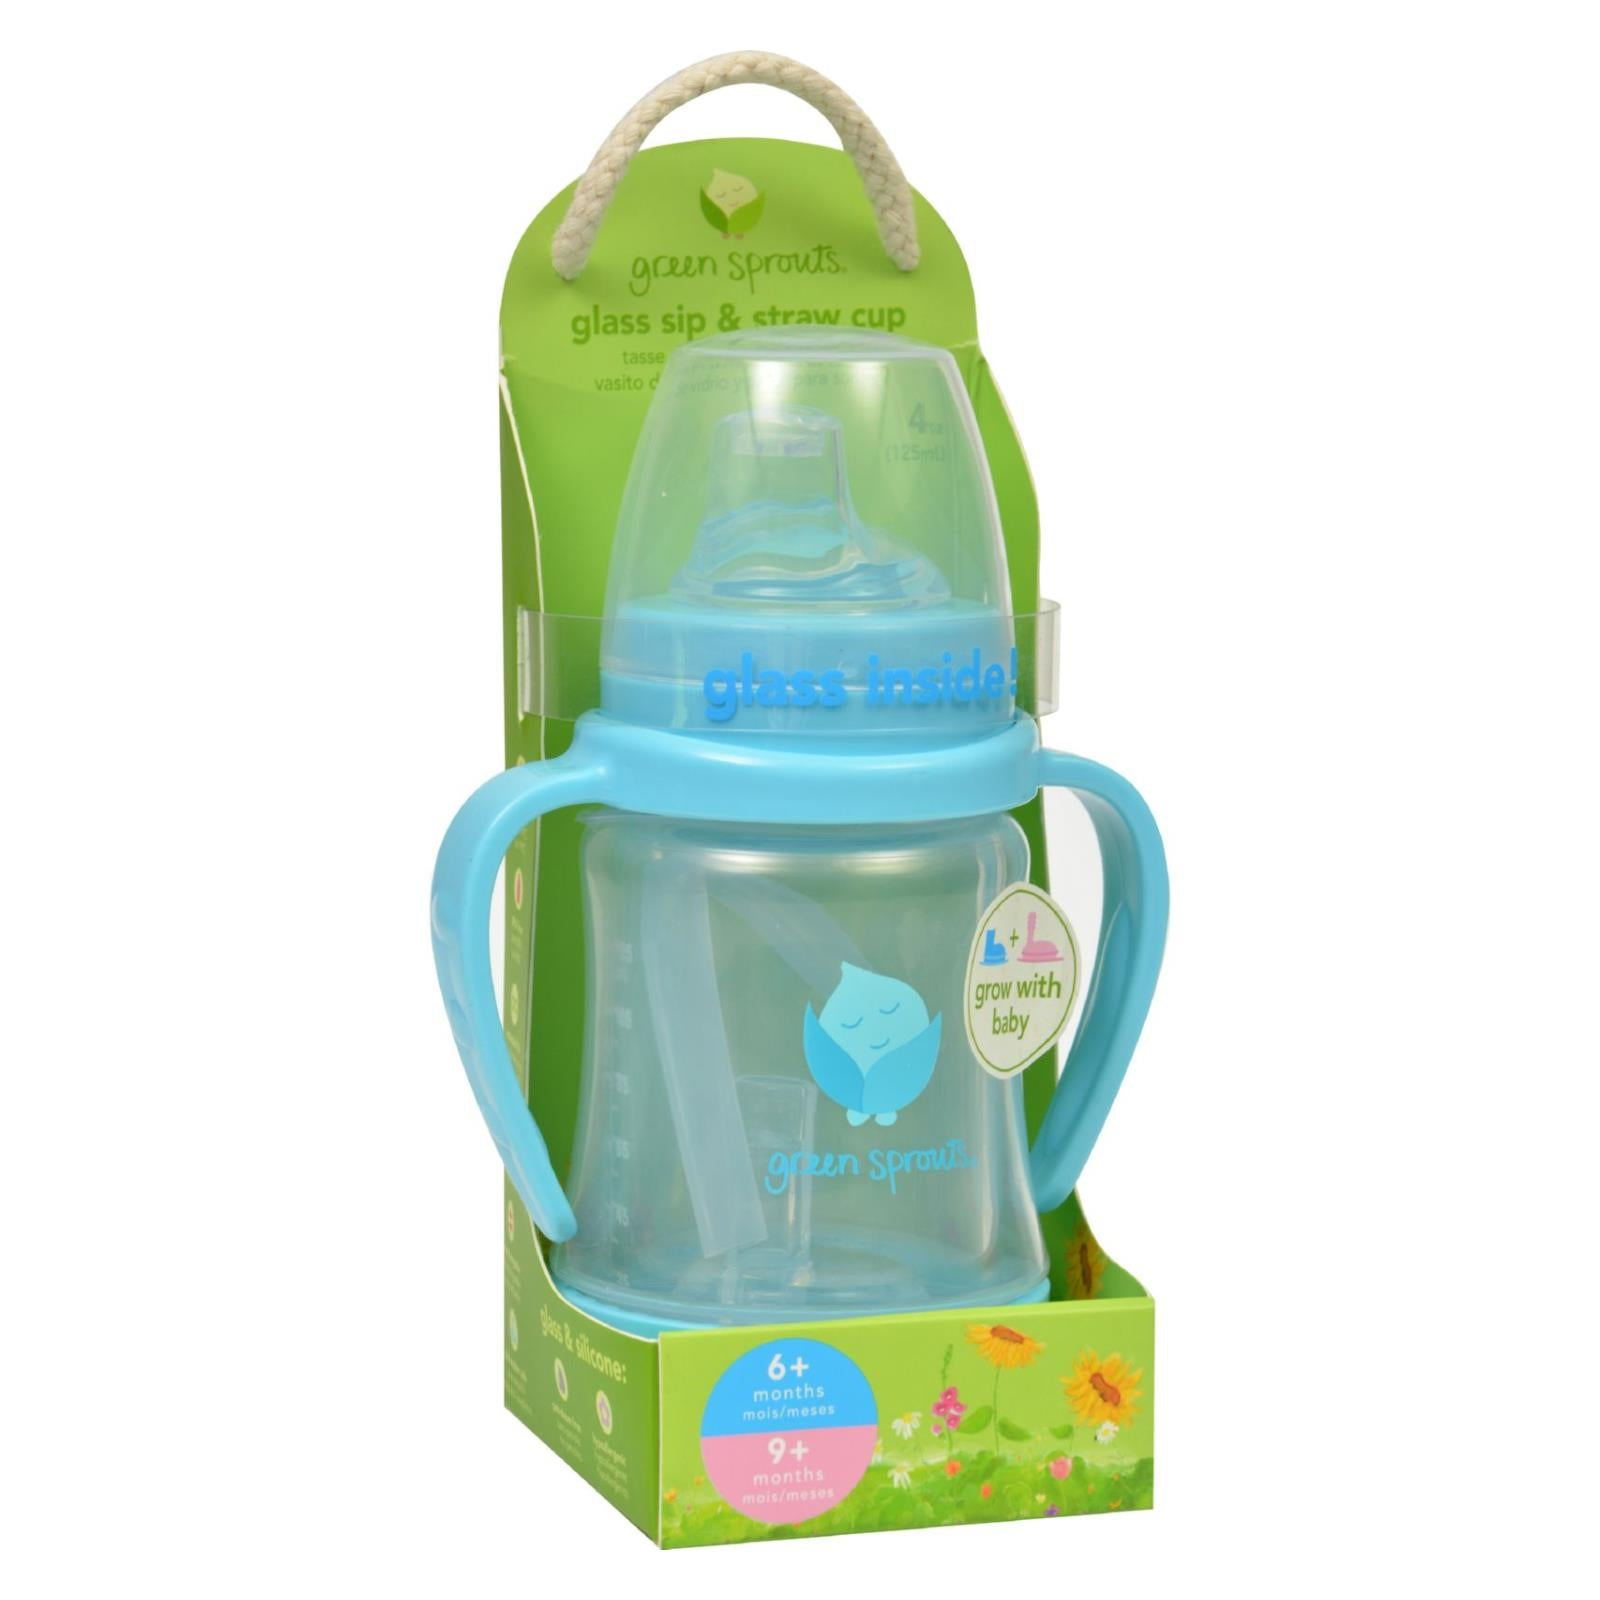 Buy Green Sprouts Cup - Sip N Straw - Glass - 6 Months Plus - Aqua - 1 Count - Bottles and Cups from Veroeco.com